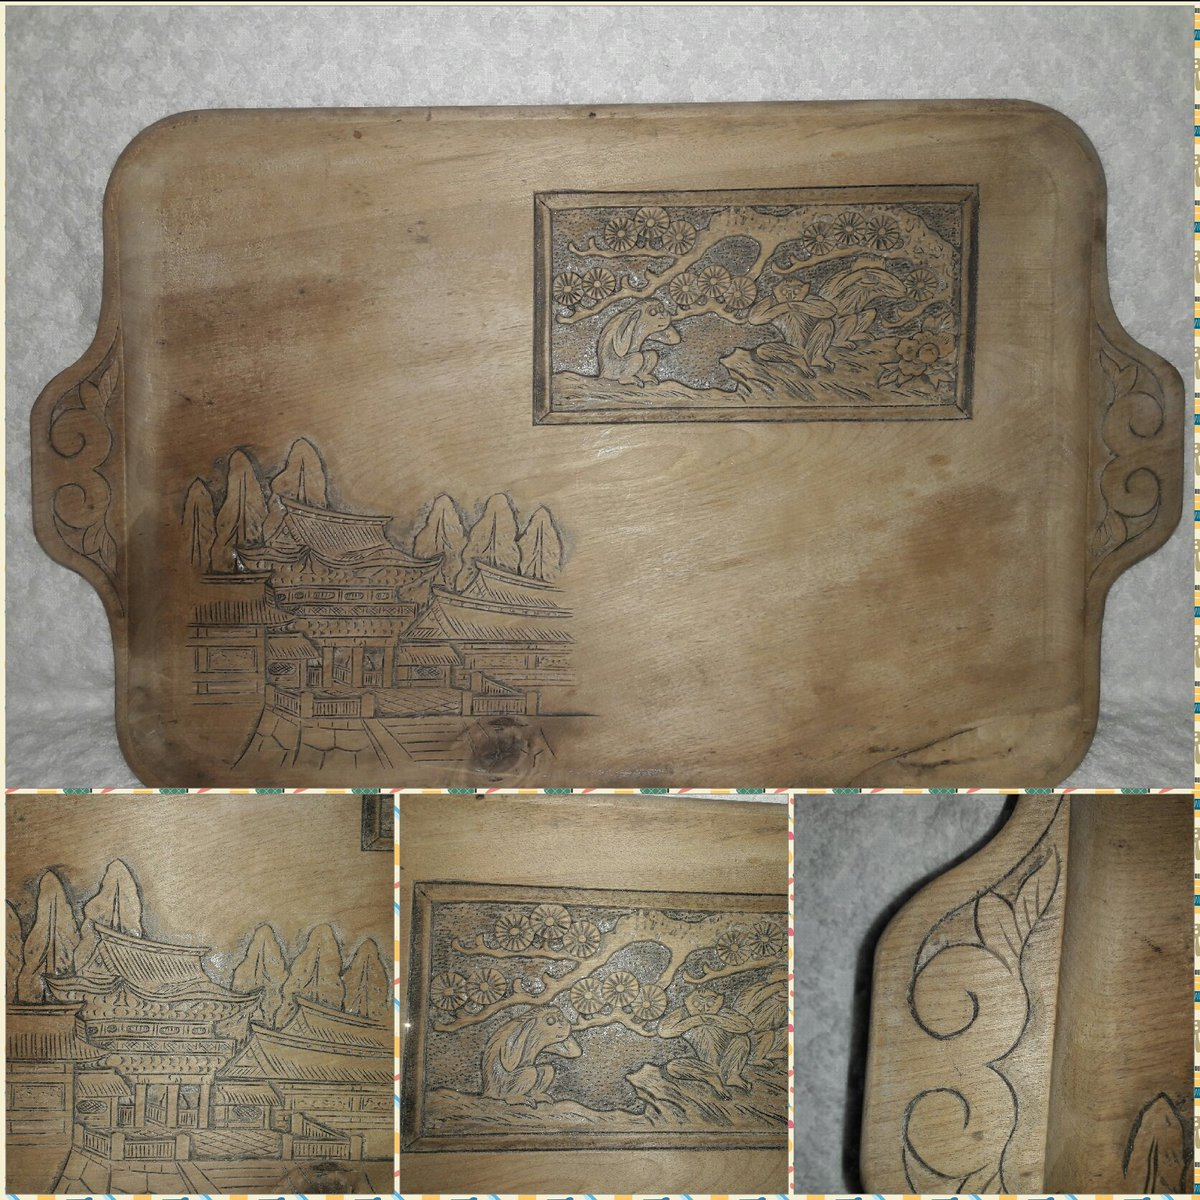 Vintage Hand Carved Raised Relief Japanese Serving Tray  Look at this on eBay  http://www. ebay.com/itm/1124930414 01 &nbsp; …  #art #woodworking #Japanese #vintage<br>http://pic.twitter.com/xGSKTTOW5l